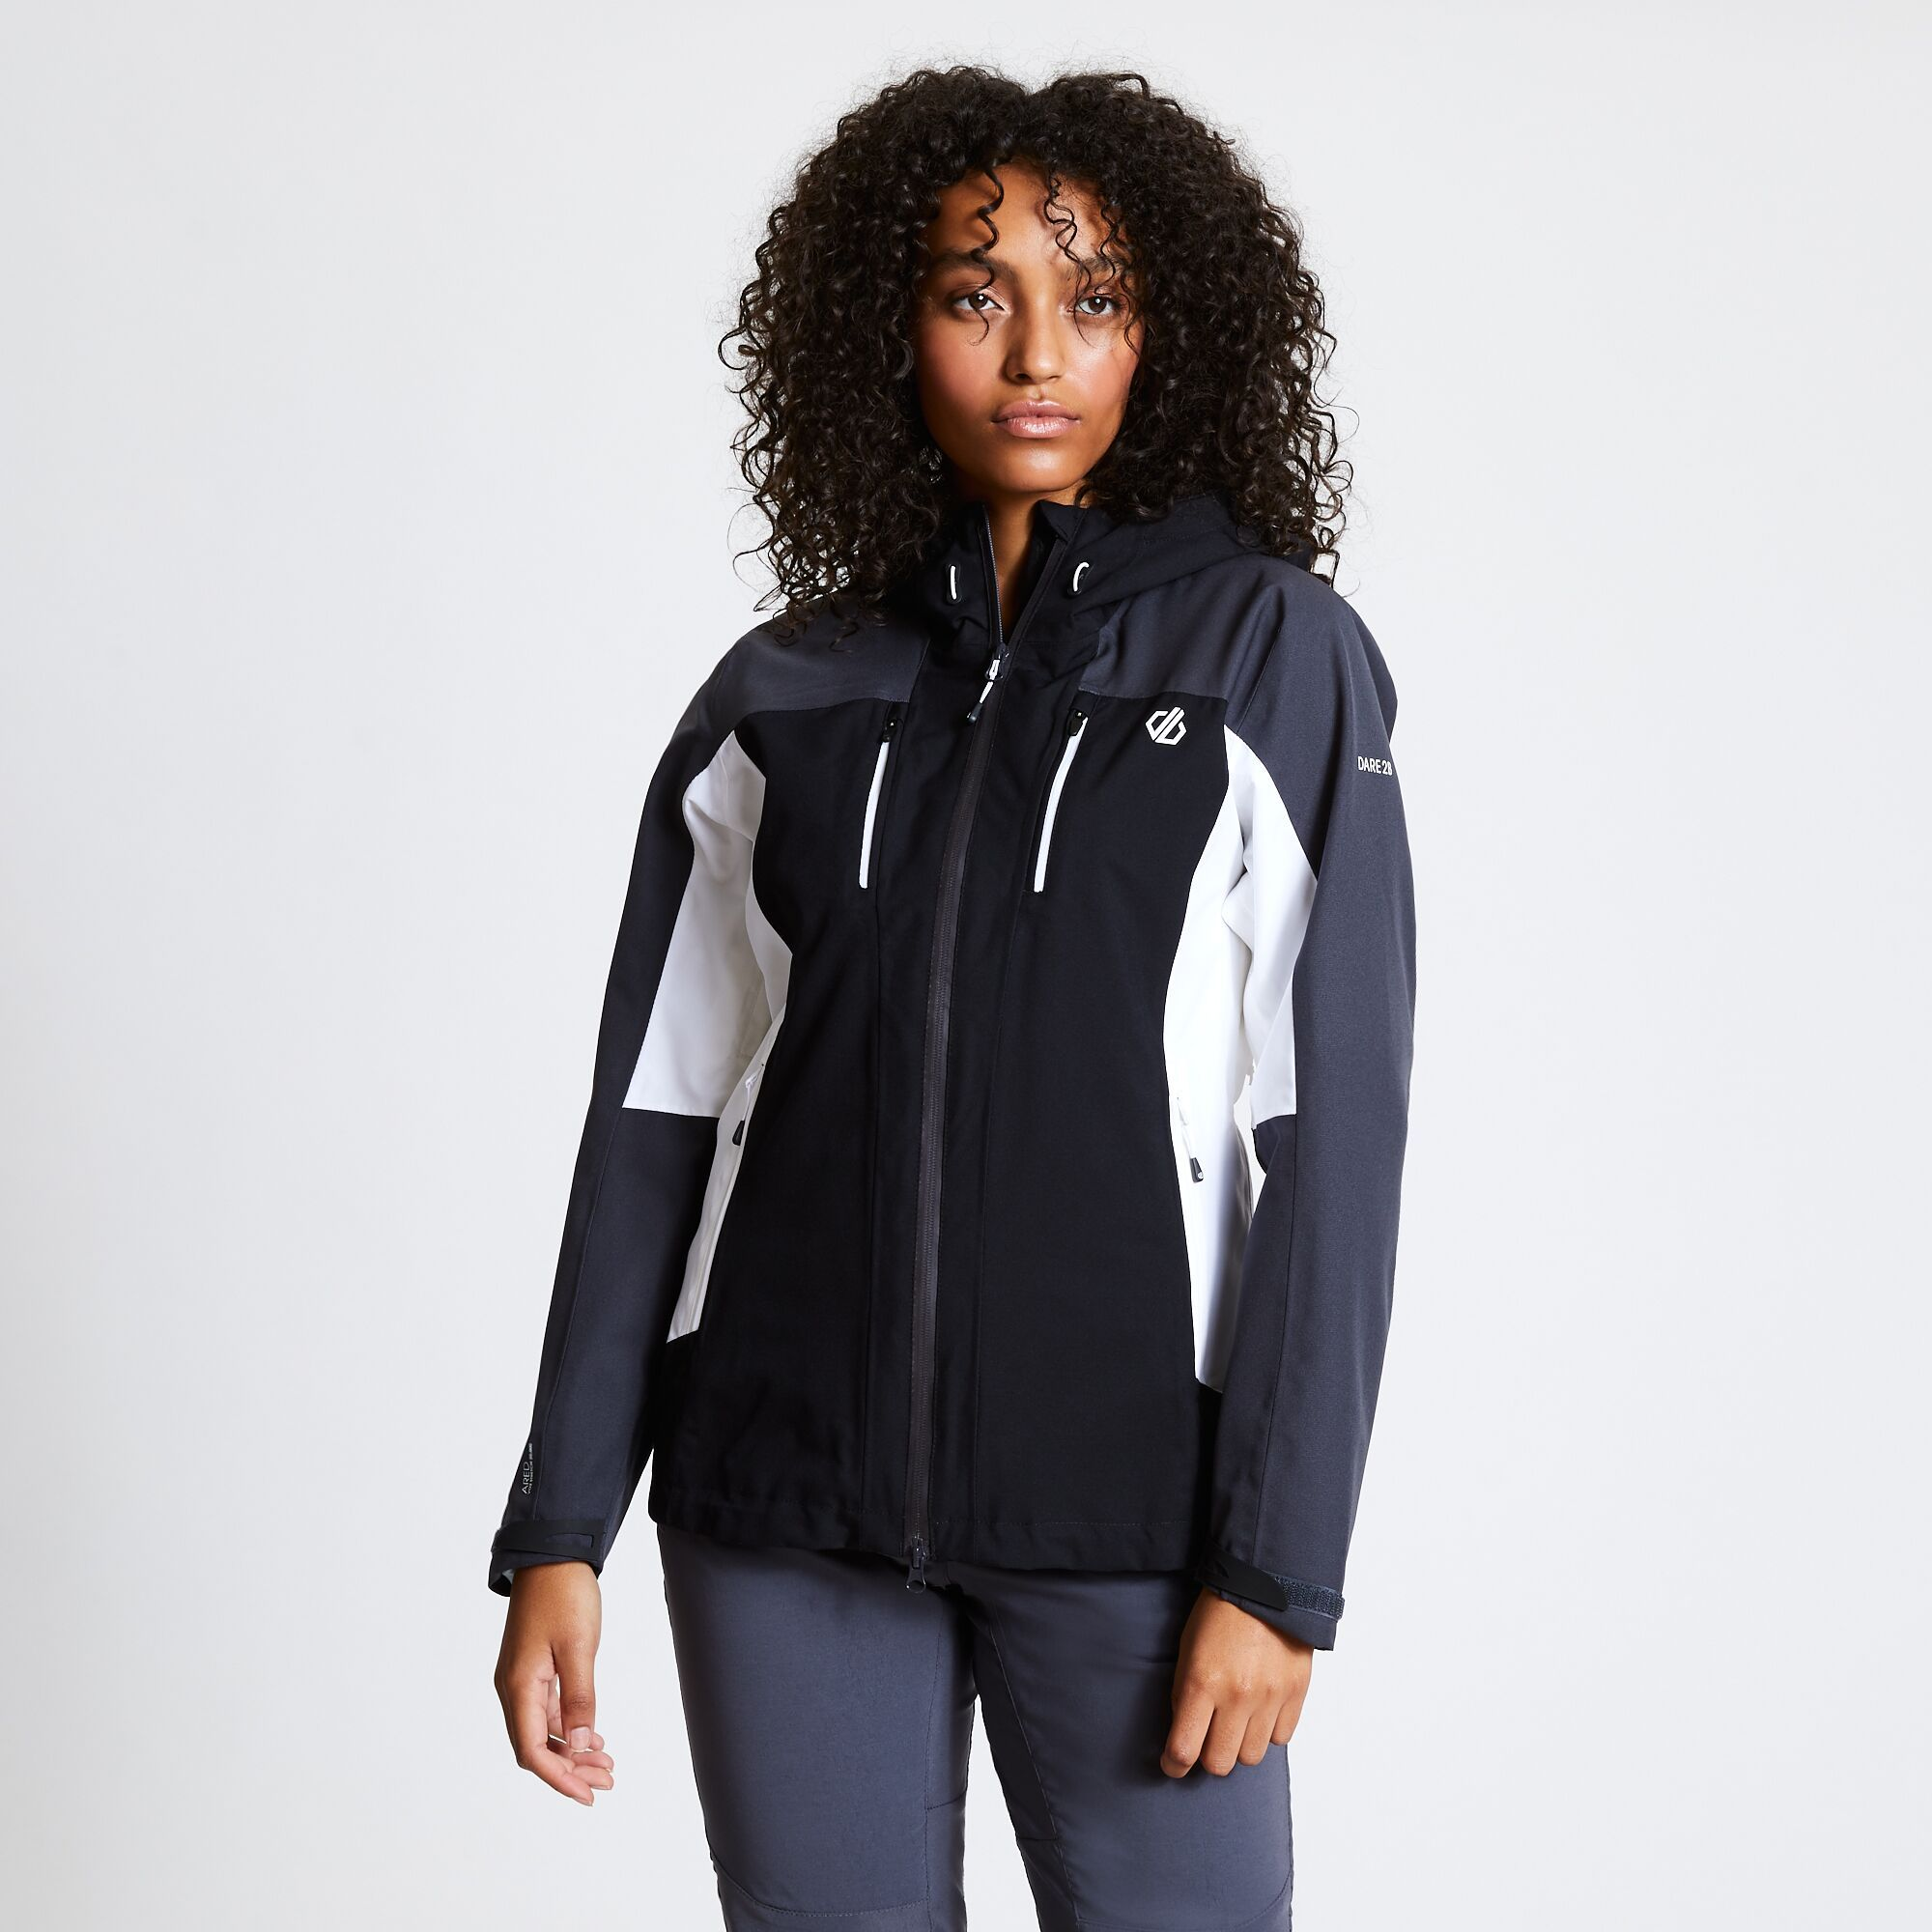 DARE2B Immense Jkt. - Damen Outdoorjacke wasserdicht schwarz